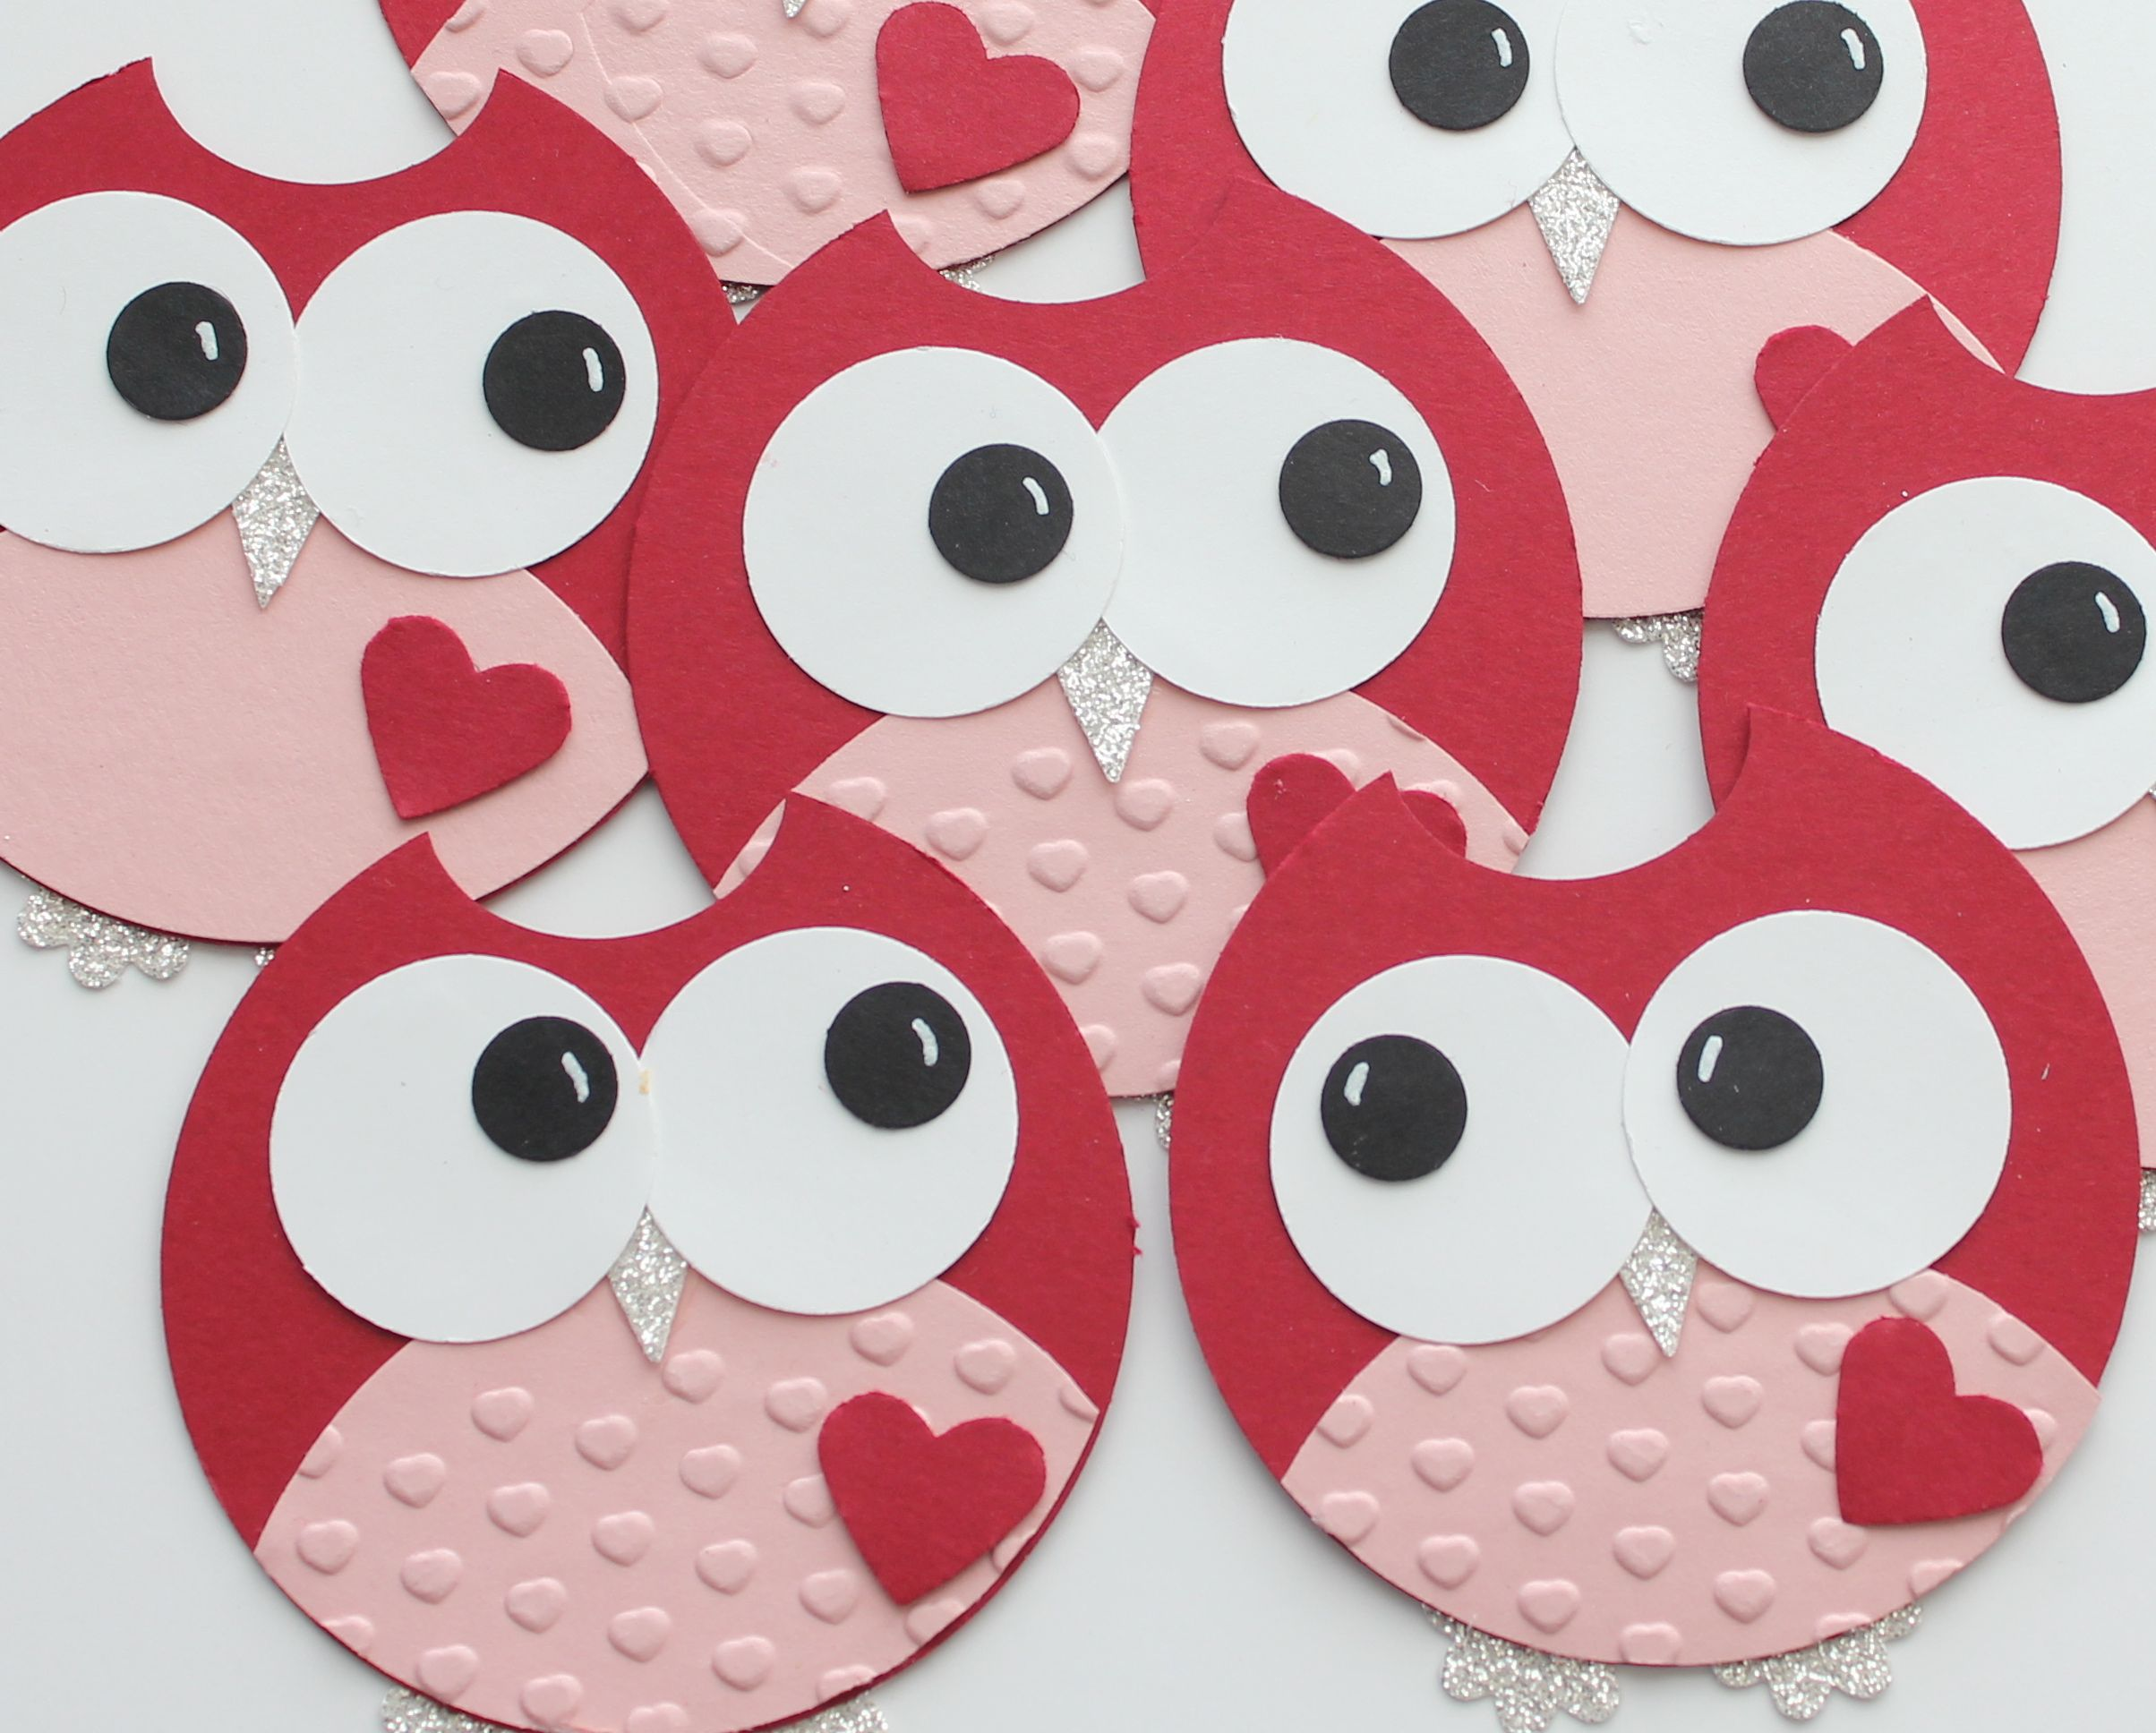 Owl Valentine Card Pink Always Love You Valentine39 Day Diagram Of The Heart And O39jays On Pinterest Adorable Little Owls For Page Embellishments Or Cards Cm Circe Makers A Punch